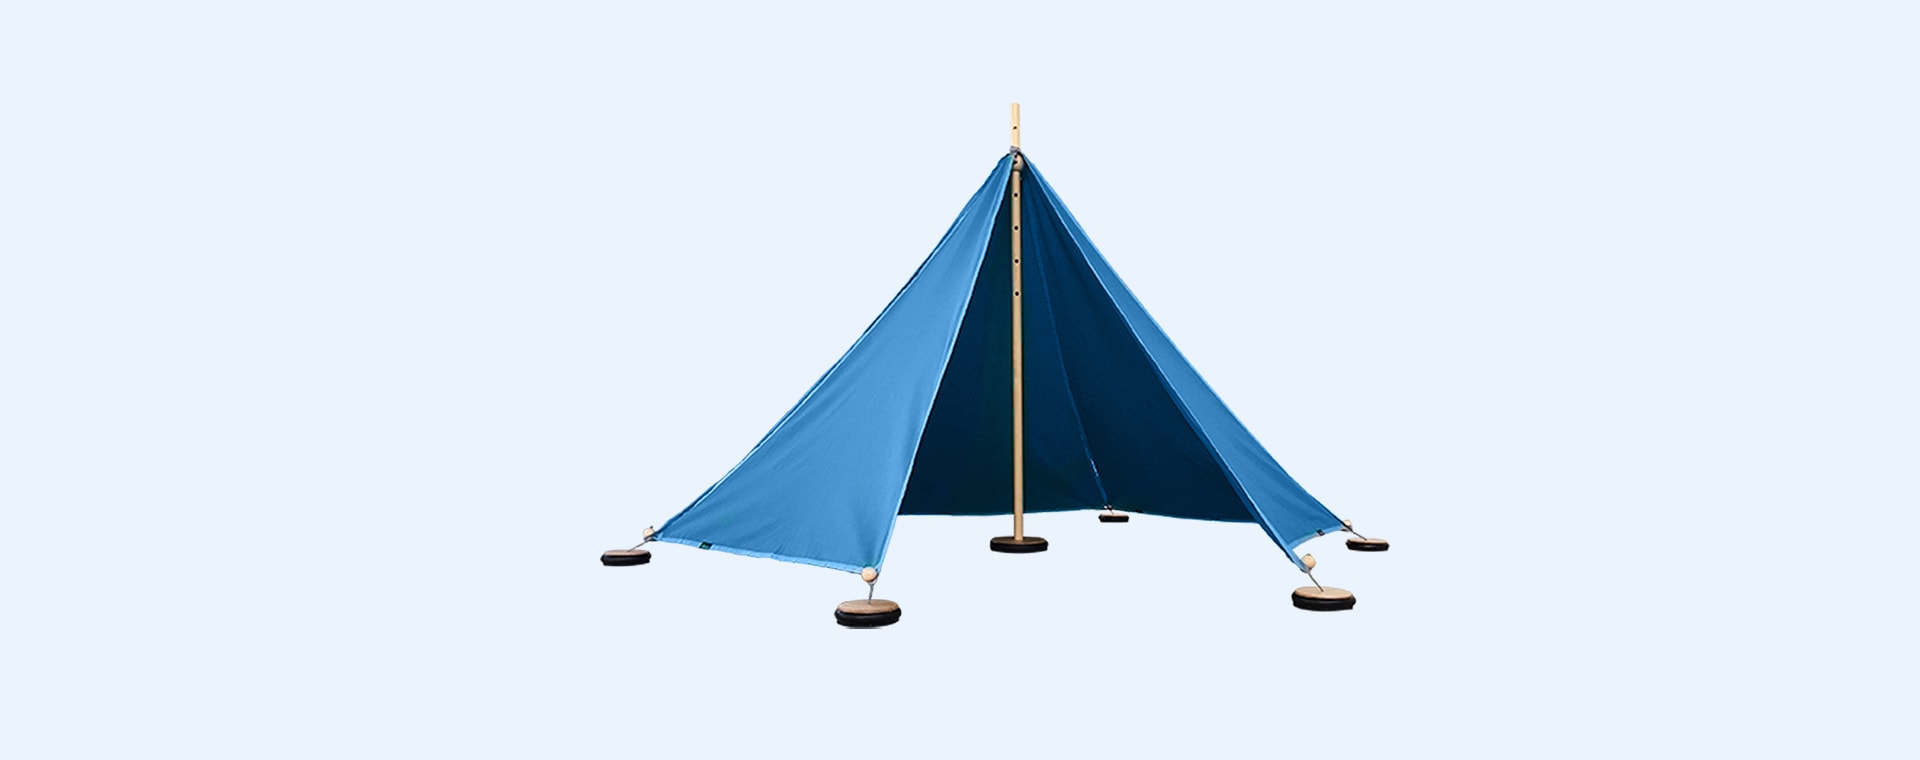 Blue abel Small Tent with Pegs & Weights